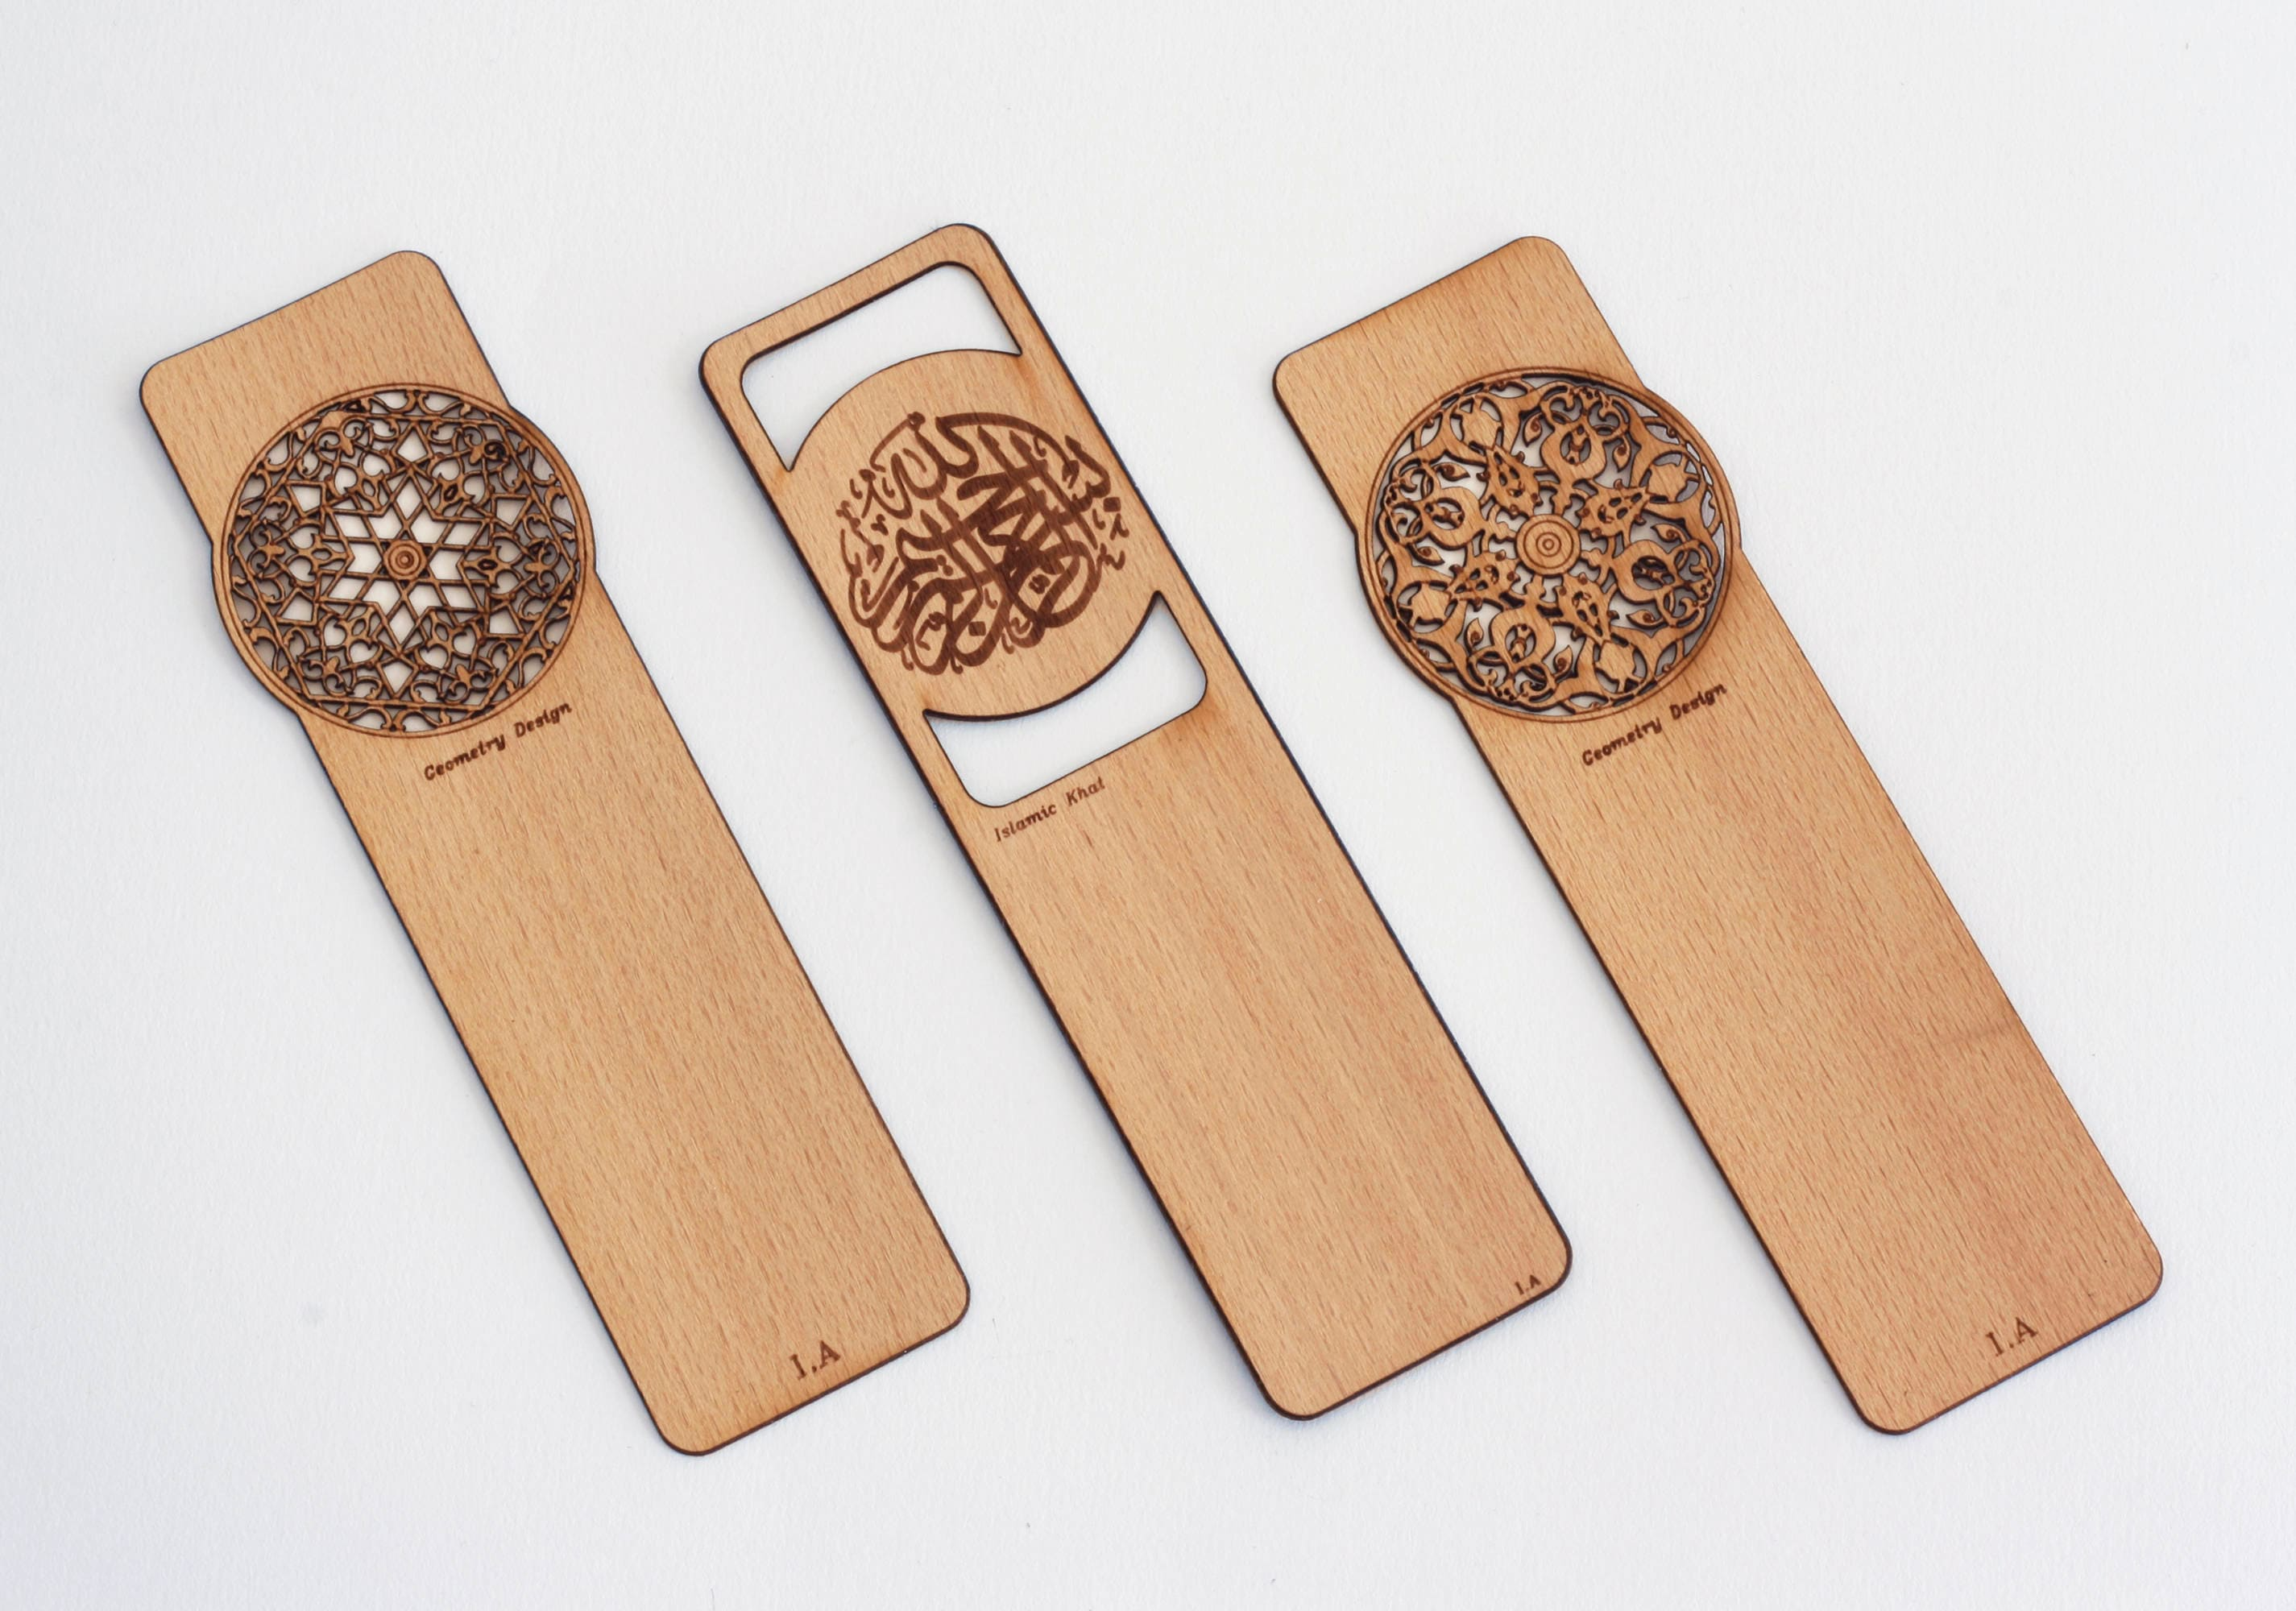 Set of 3 - Luxury Islamic Bookmarks - Real Wood Veneer - Beautifully Crafted Page Markers - High Quality